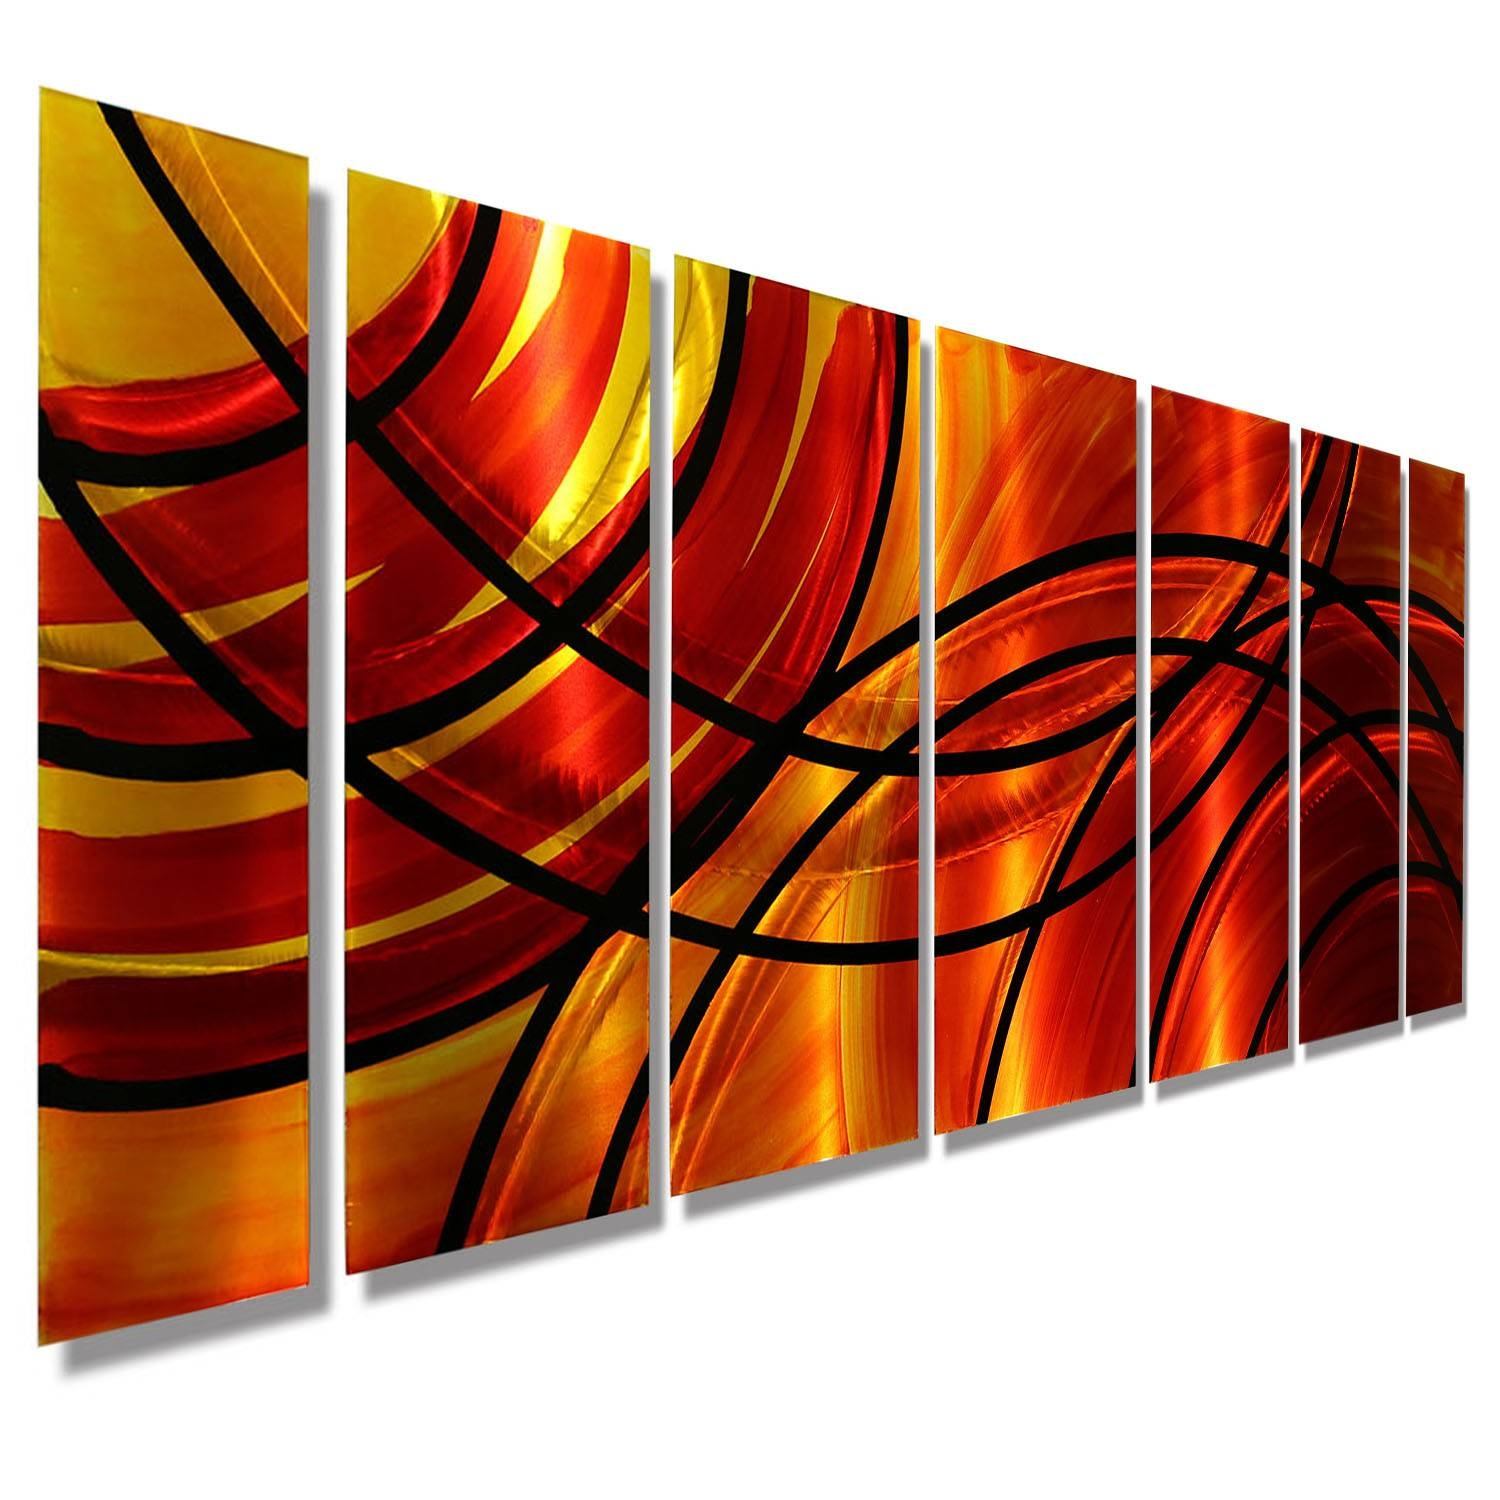 Boundfire – Red & Orange Modern Metal Wall Artjon Allen With Regard To Current Large Contemporary Wall Art (View 17 of 20)